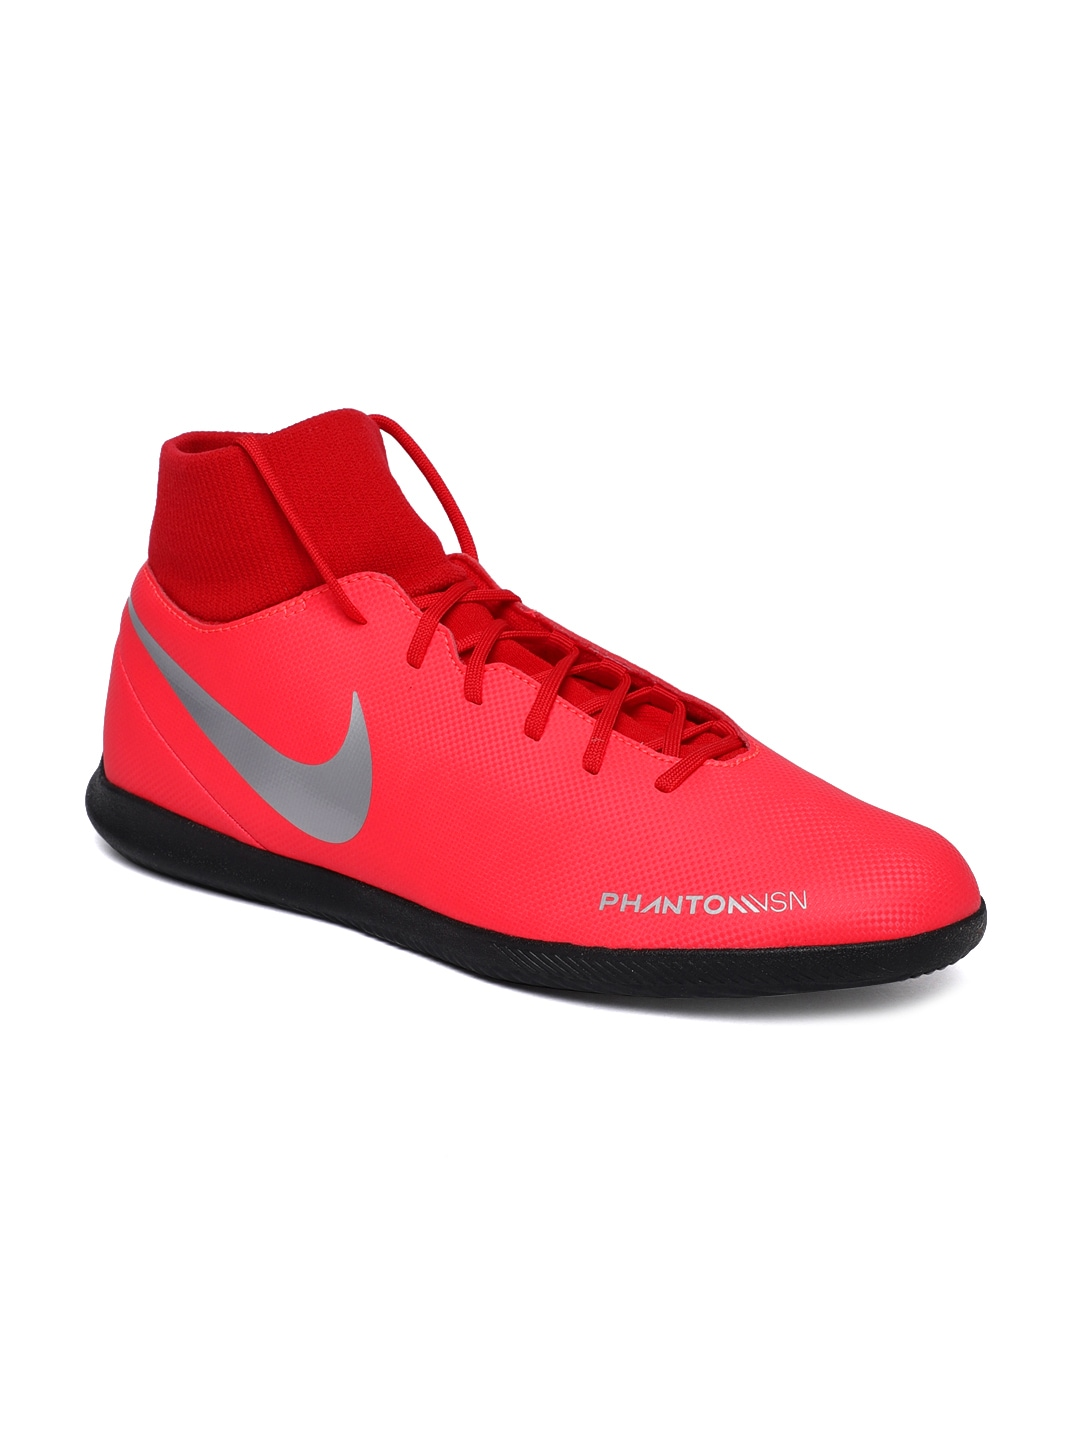 25bc84de1 Nike Men Red Shoes - Buy Nike Men Red Shoes online in India